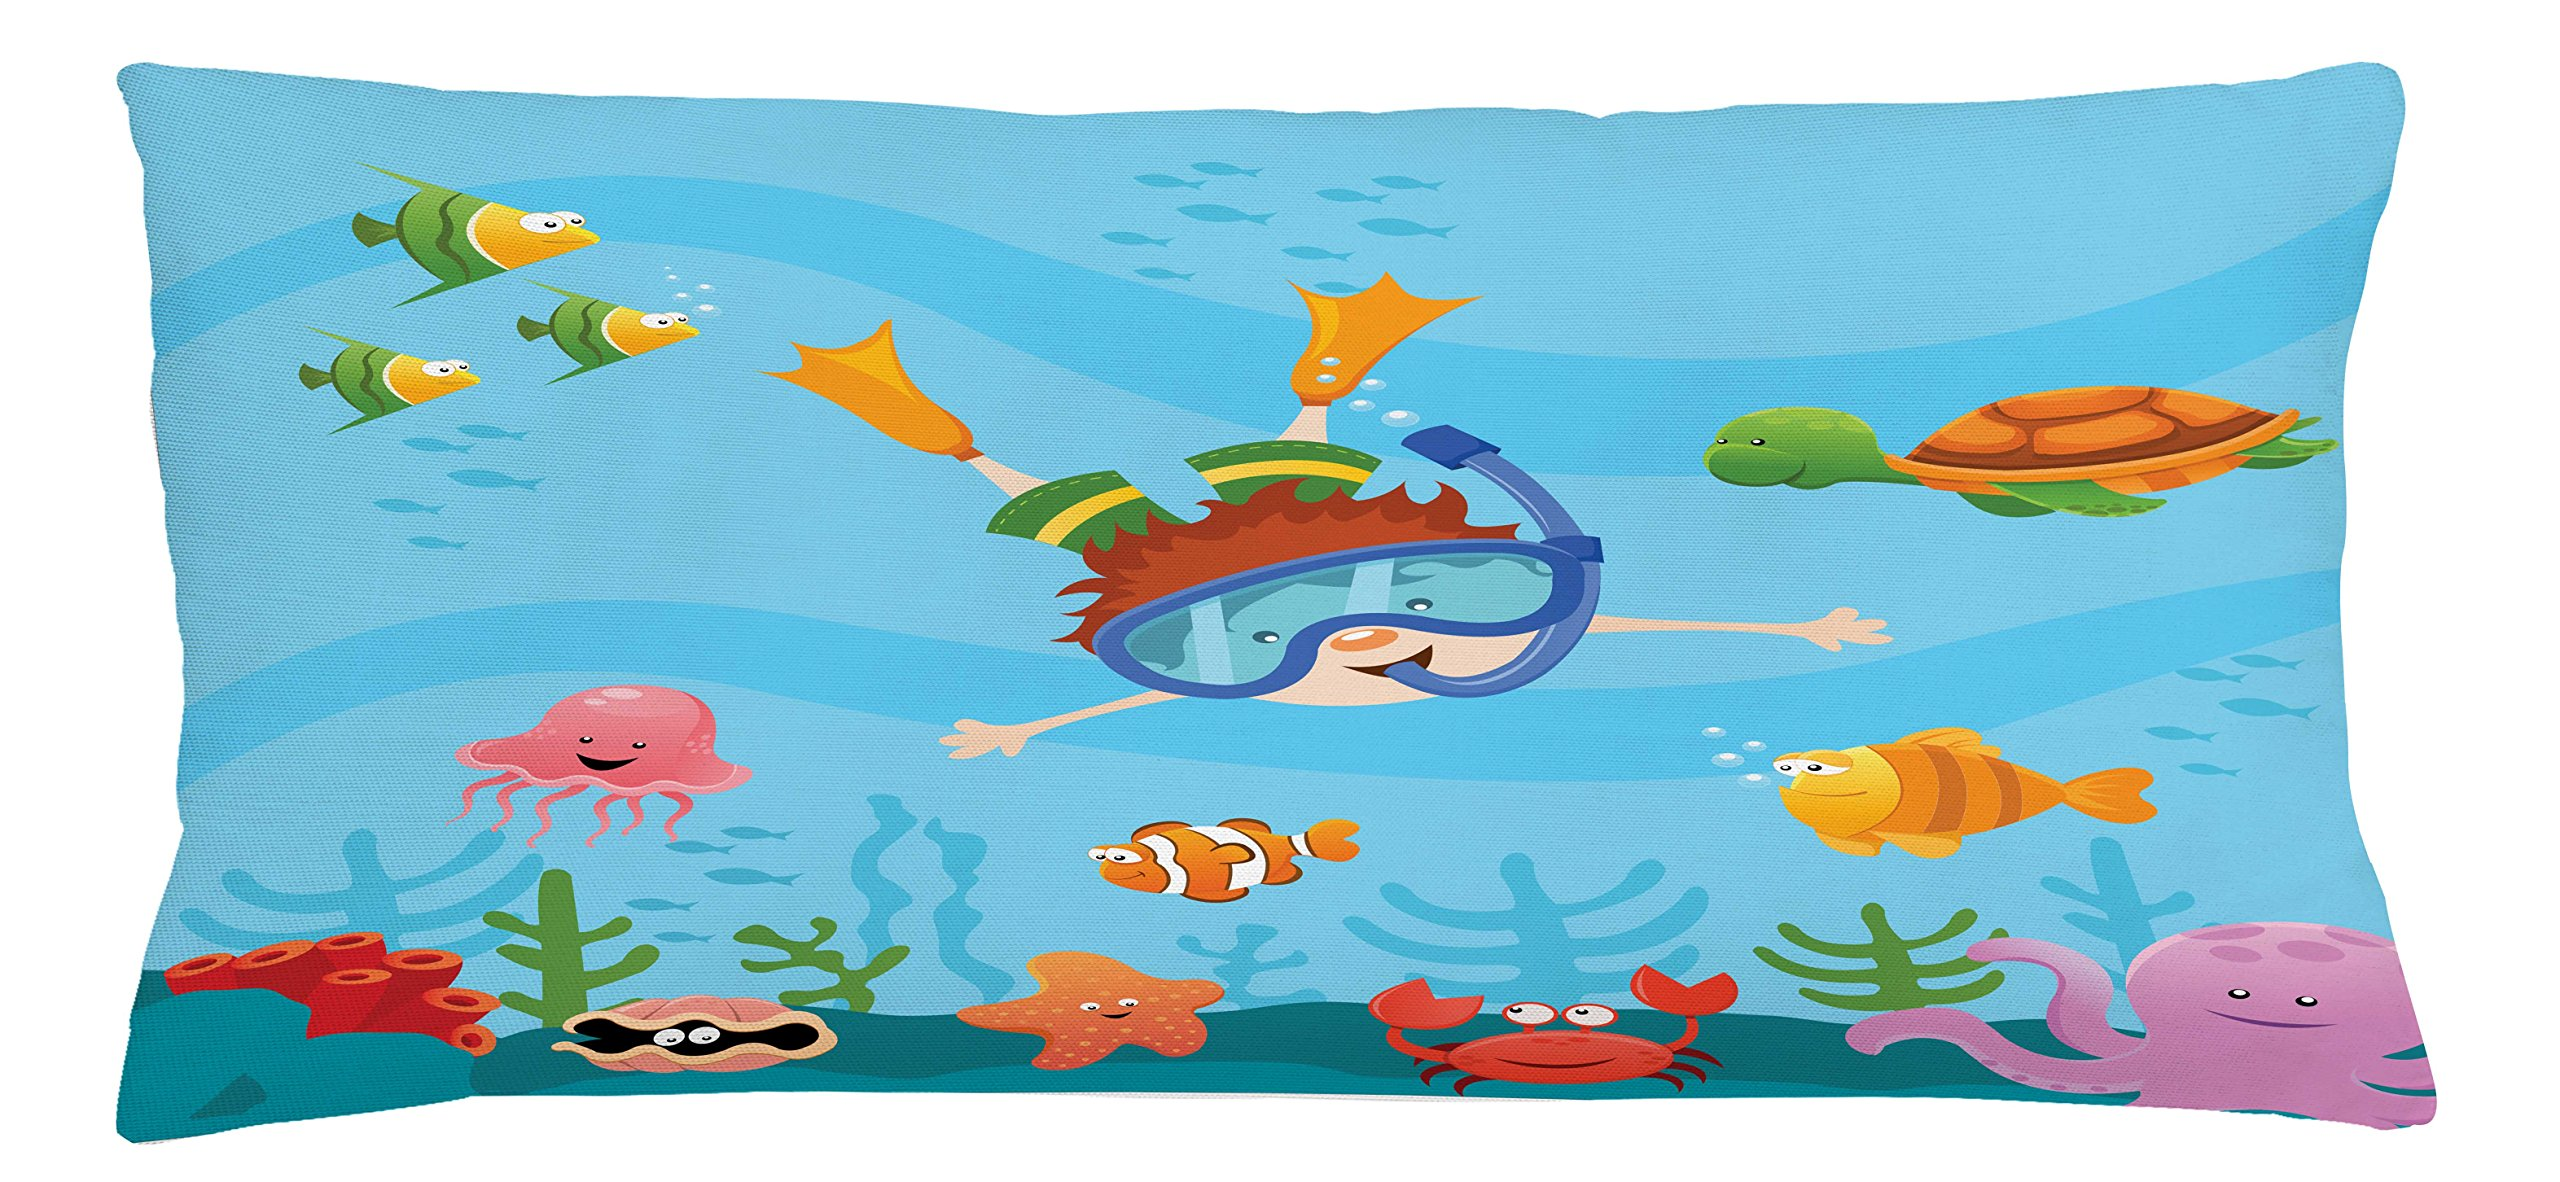 Ambesonne Kids Throw Pillow Cushion Cover, Cute Boy Diving and Exploring Subaquatic Happiness Seashell Summer Cartoon Characters, Decorative Square Accent Pillow Case, 36 X 16 Inches, Multicolor